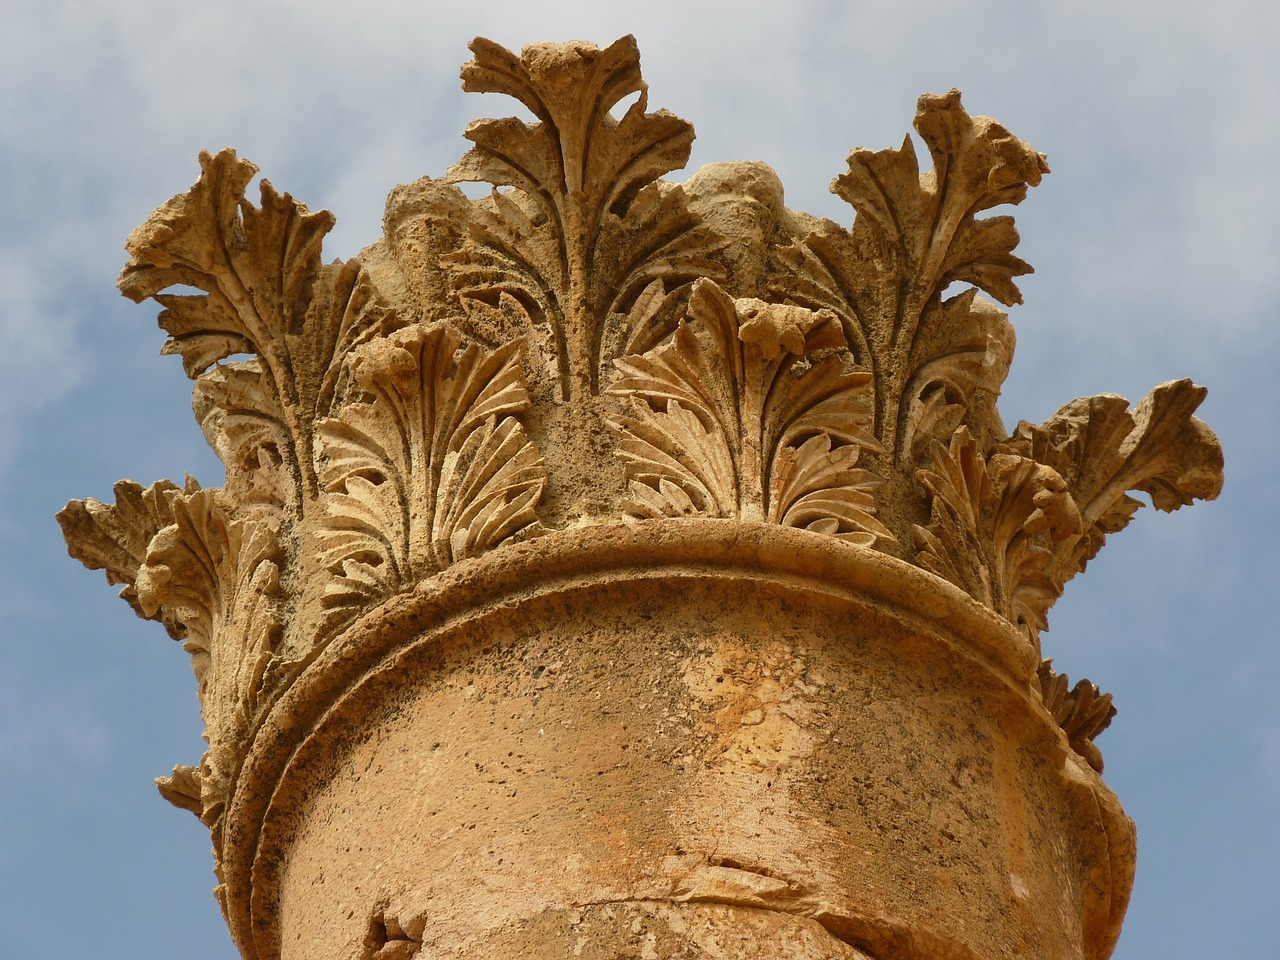 temple of artemis,gerasa,jerash,jordan,acanthus,holiday,travel,middle east,ruin,stone,ornament,corinthian,free pictures, free photos, free images, royalty free, free illustrations, public domain